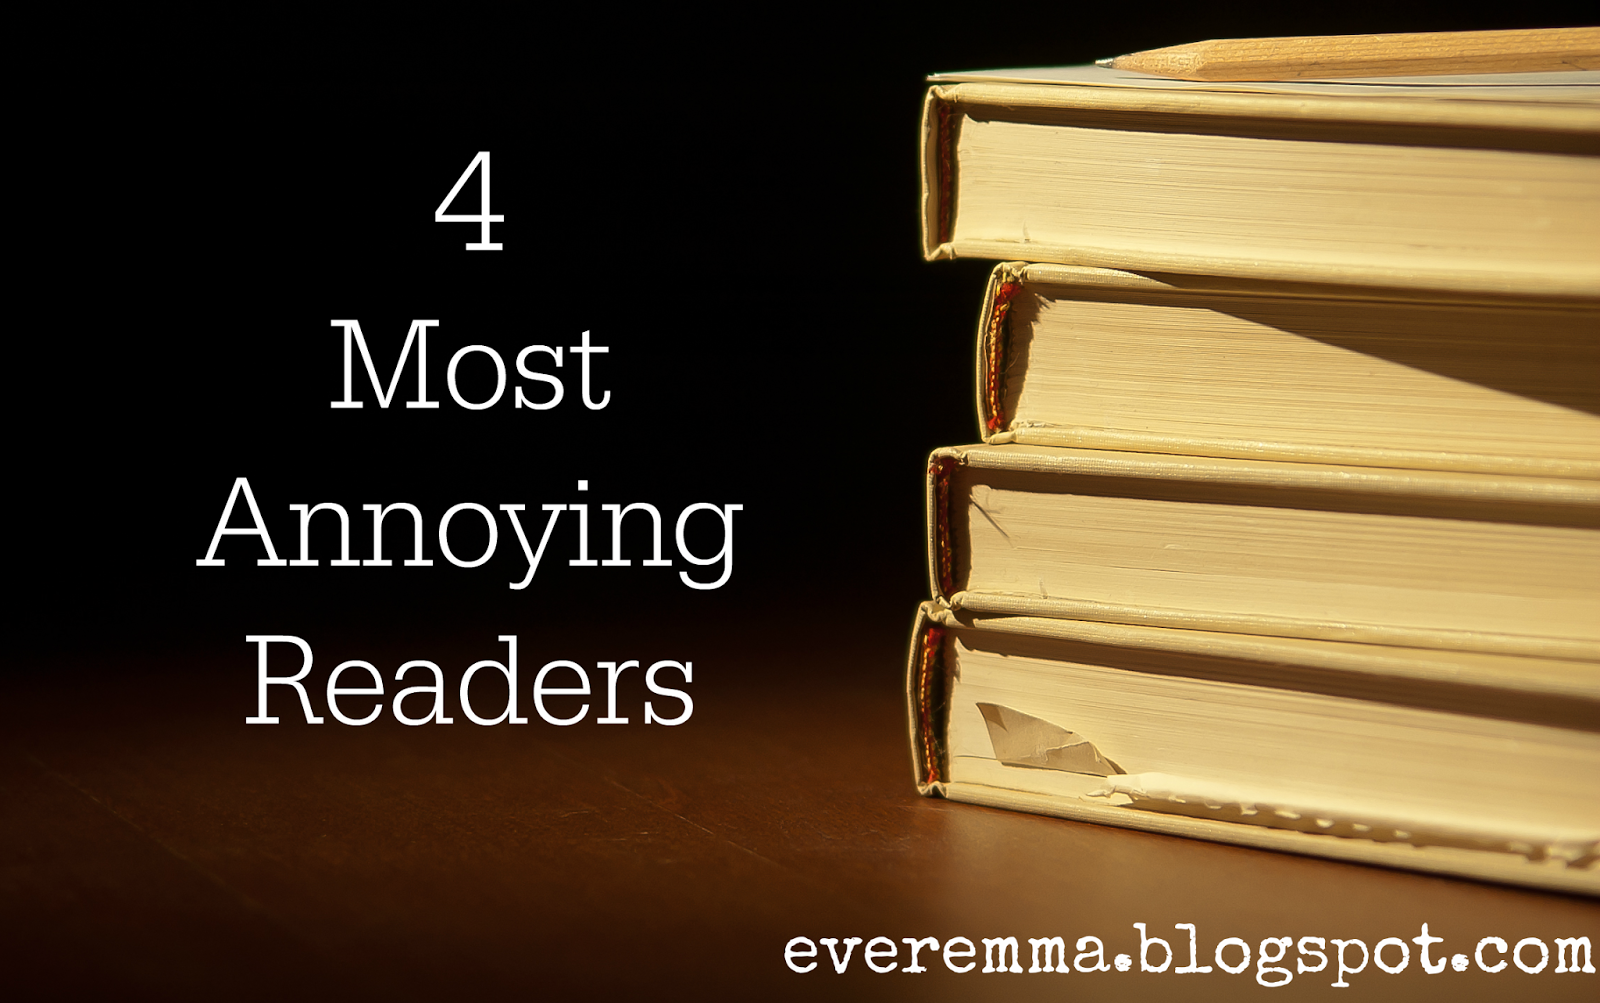 4 Most Annoying Readers by EverEmma.blogspot.com